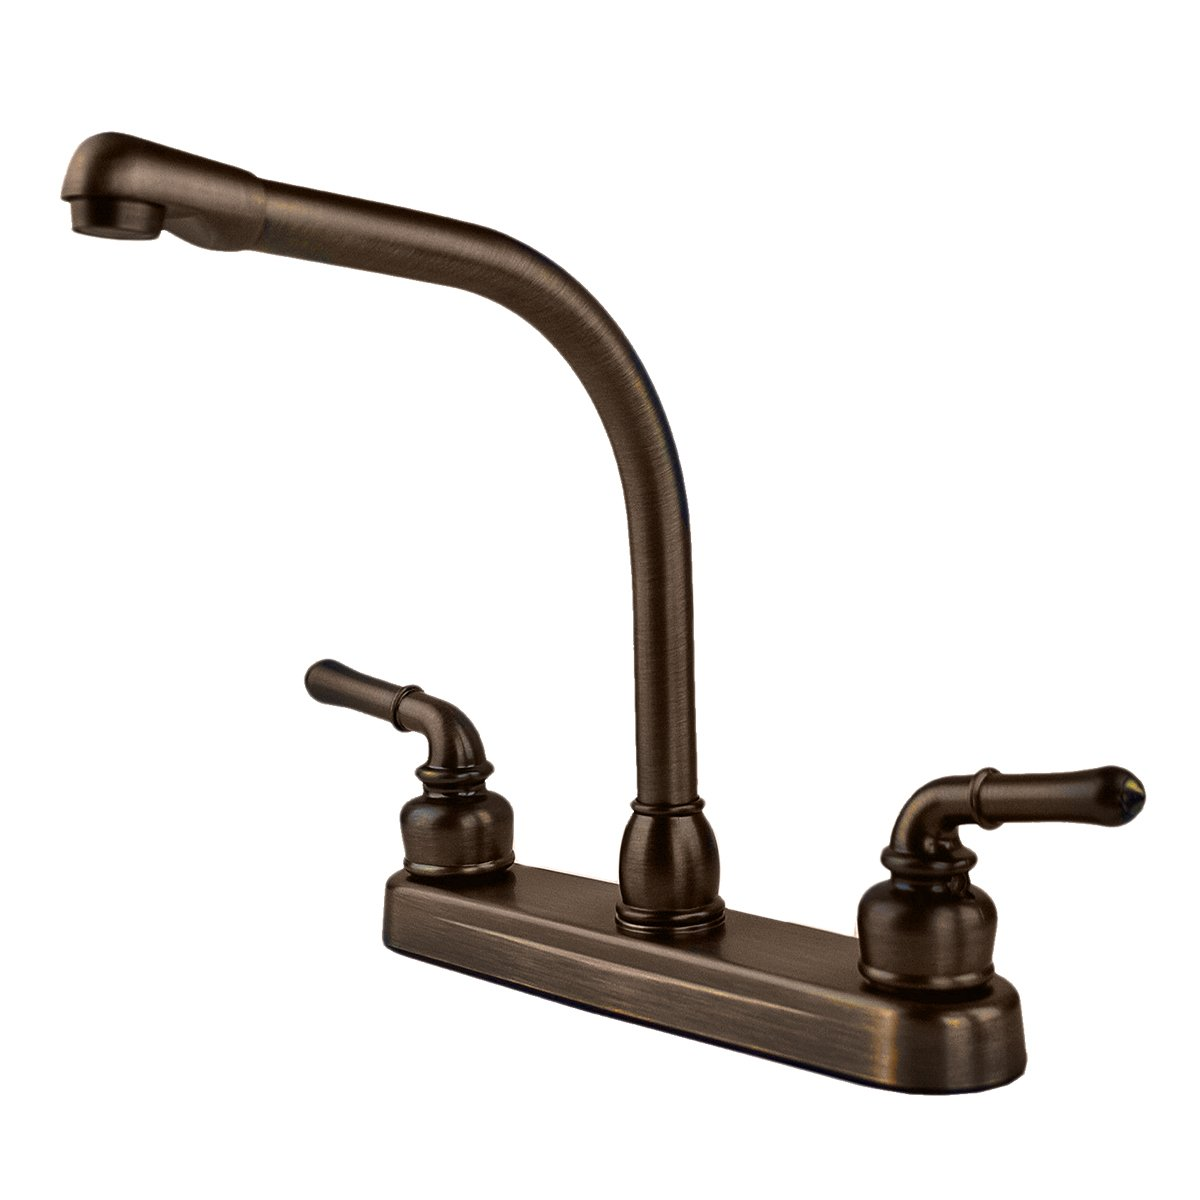 Amazon.com: RV / Mobile Home High Rise Kitchen Sink Faucet, Oil ...